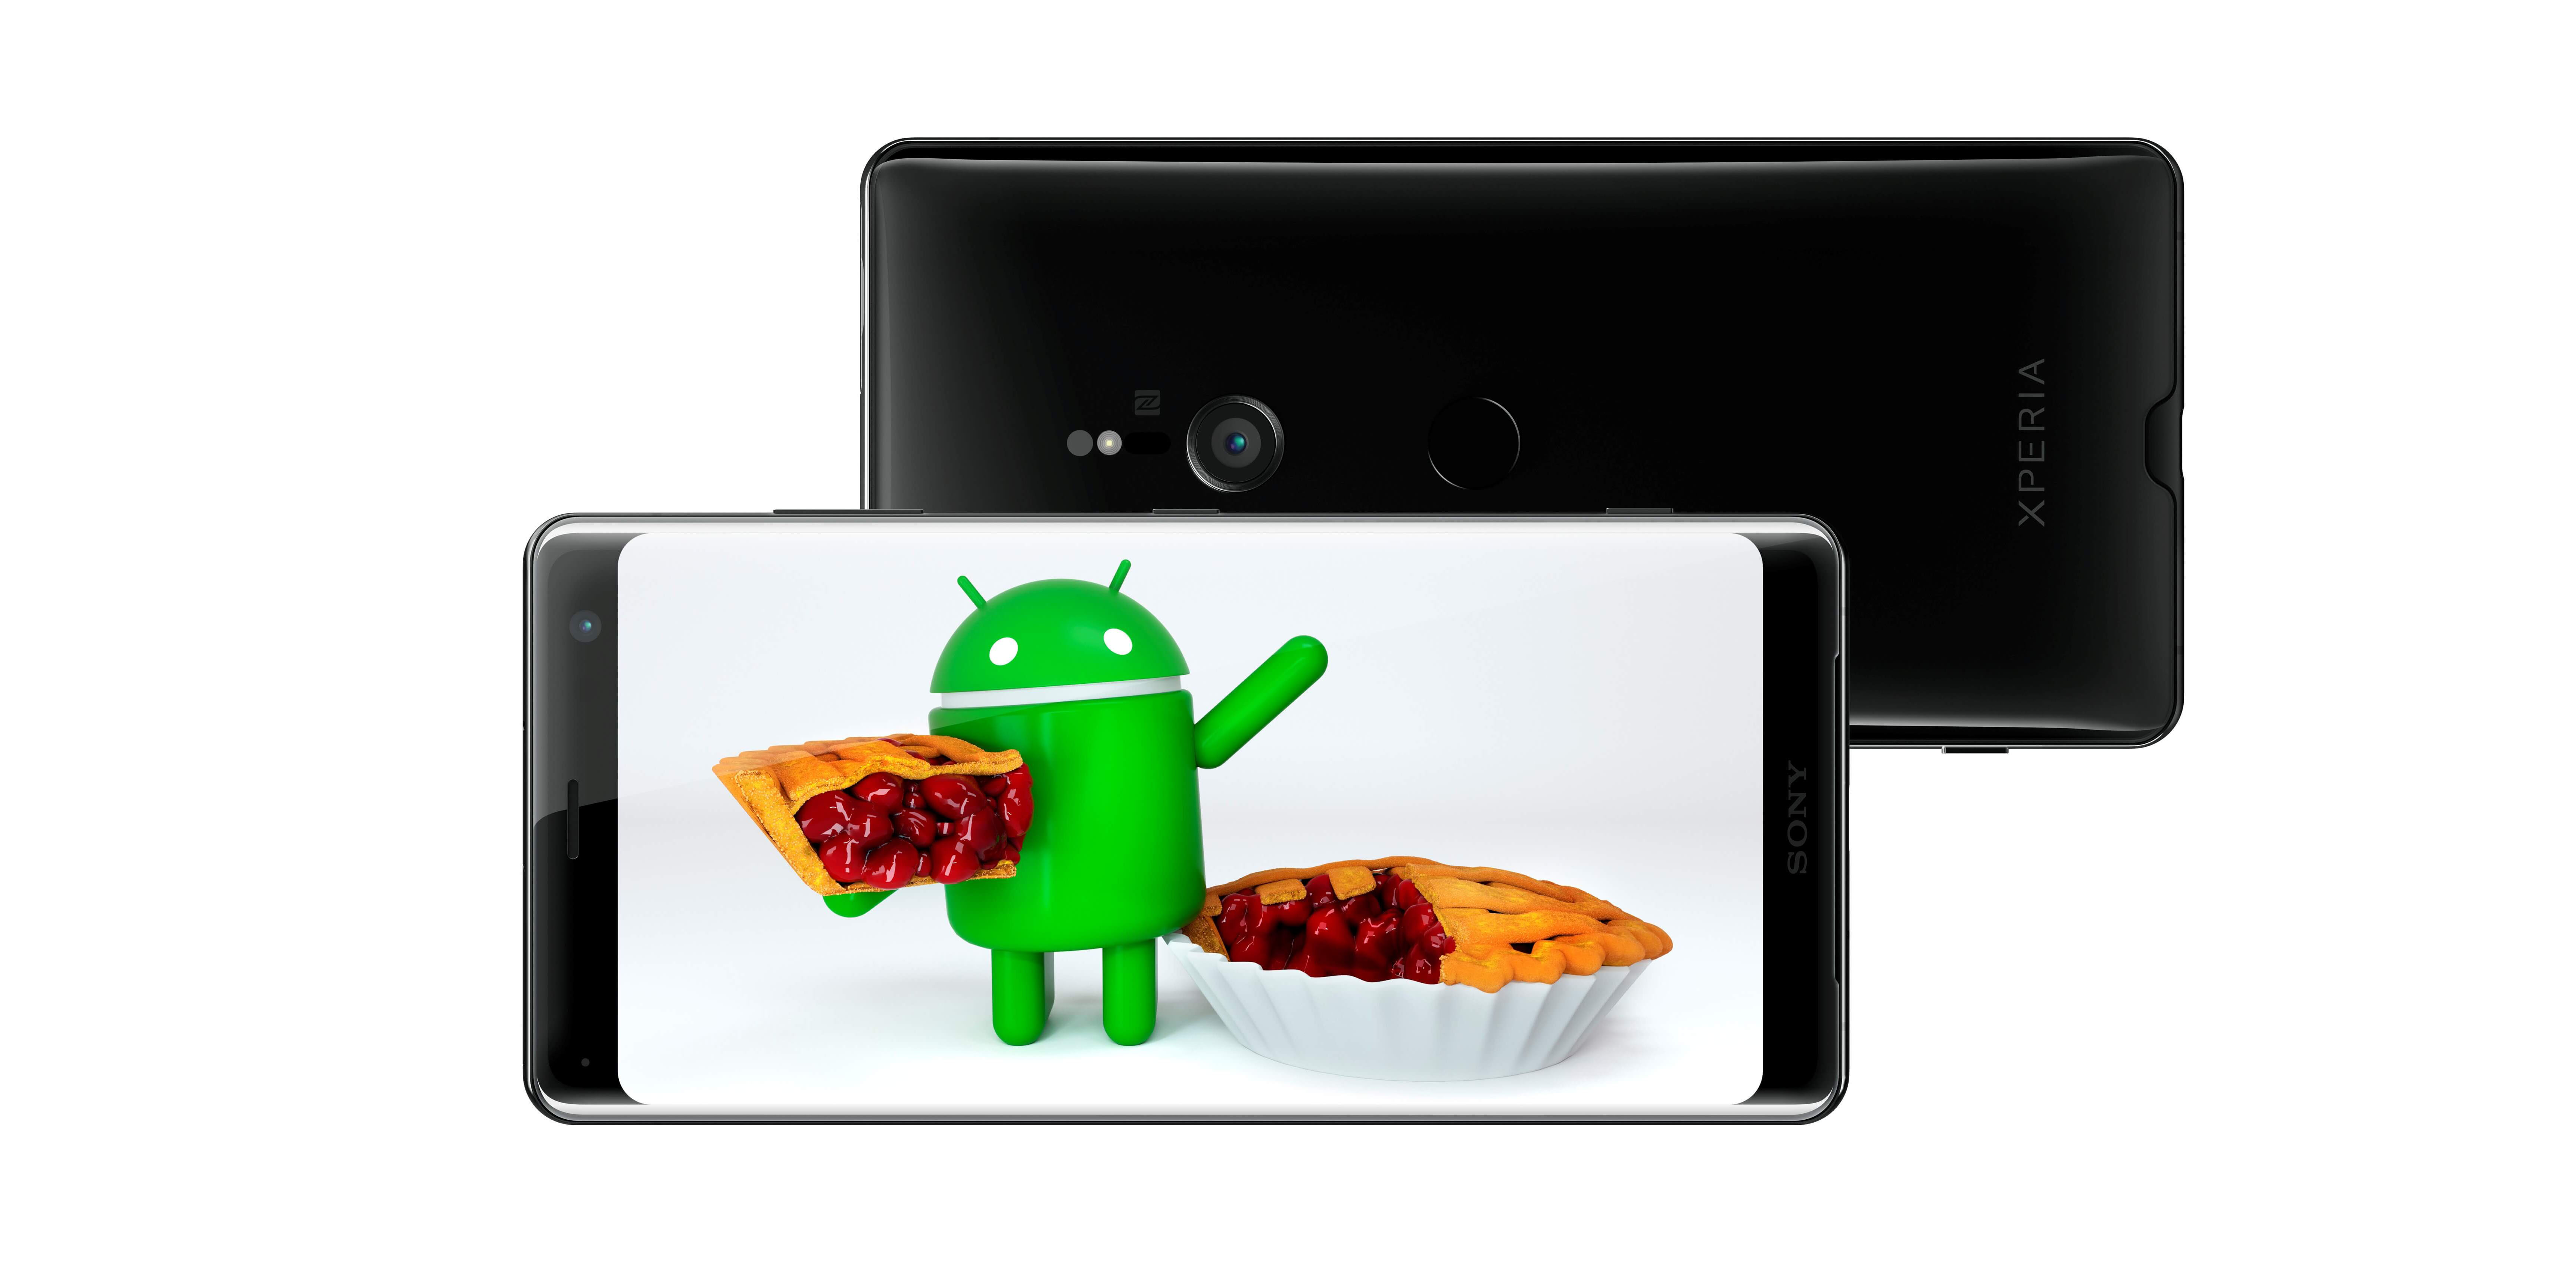 Sony Xz1 Compact System Update Sony Xperia Android Pie Upgrade Dates Revealed 9to5google